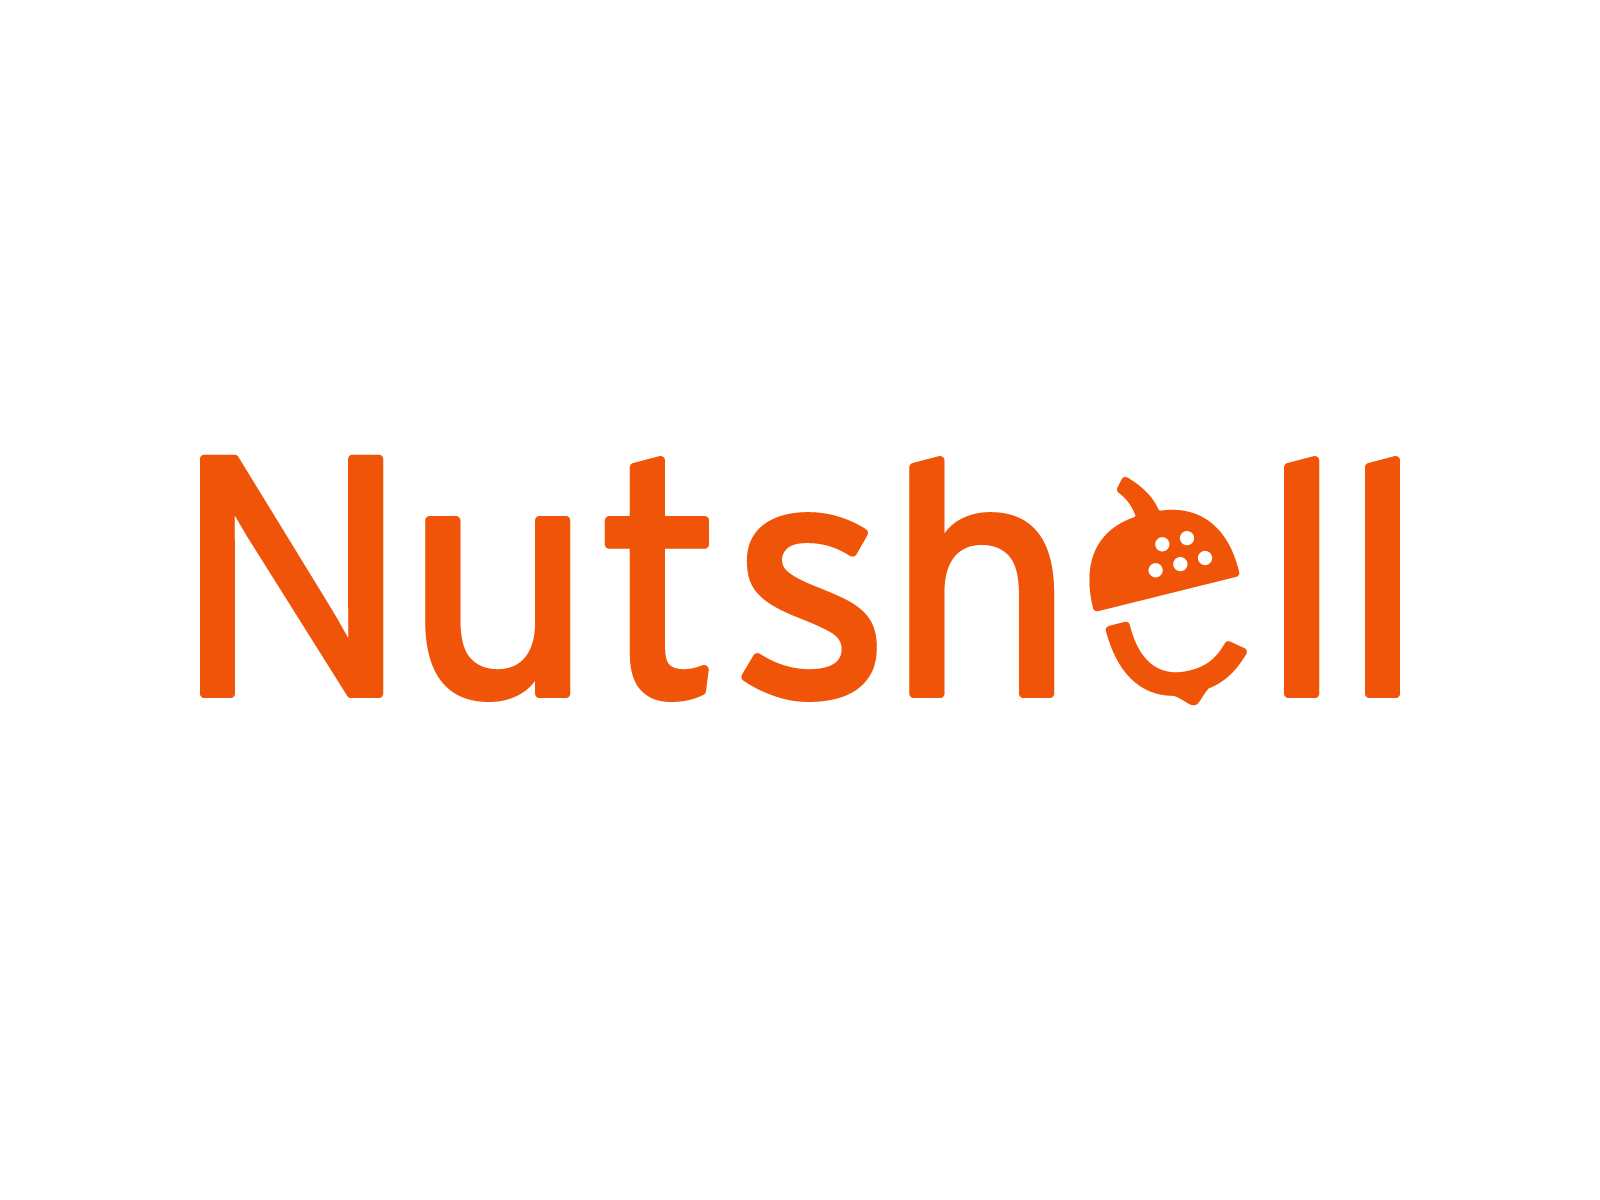 nutshell-logo-orange2.png